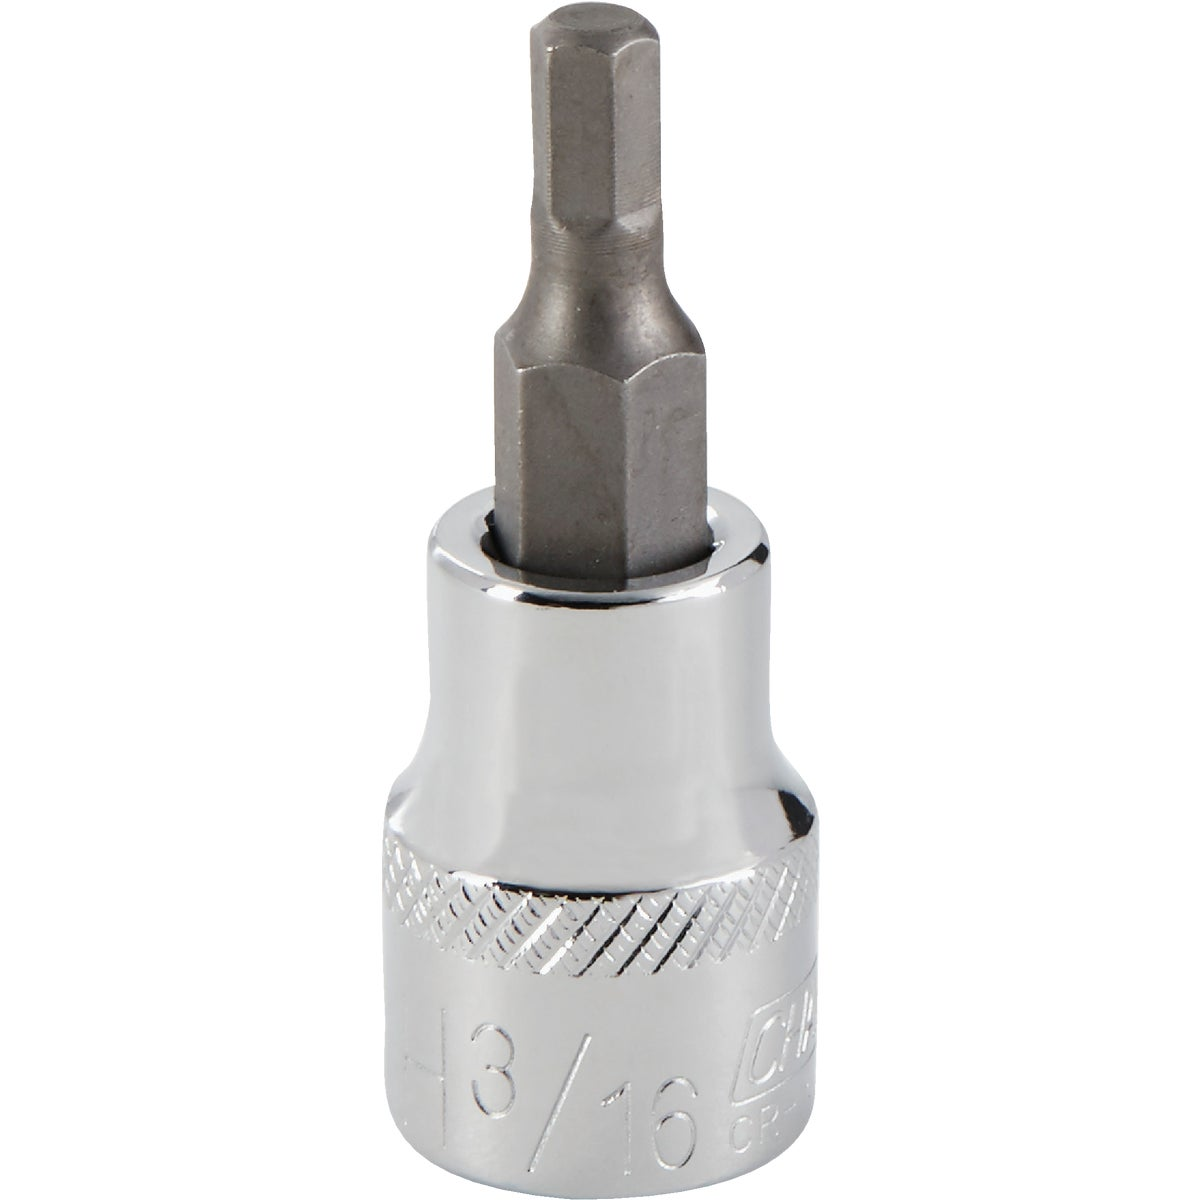 "3/16"" HEX SOCKET BIT - 371165 by Bwt Inc"